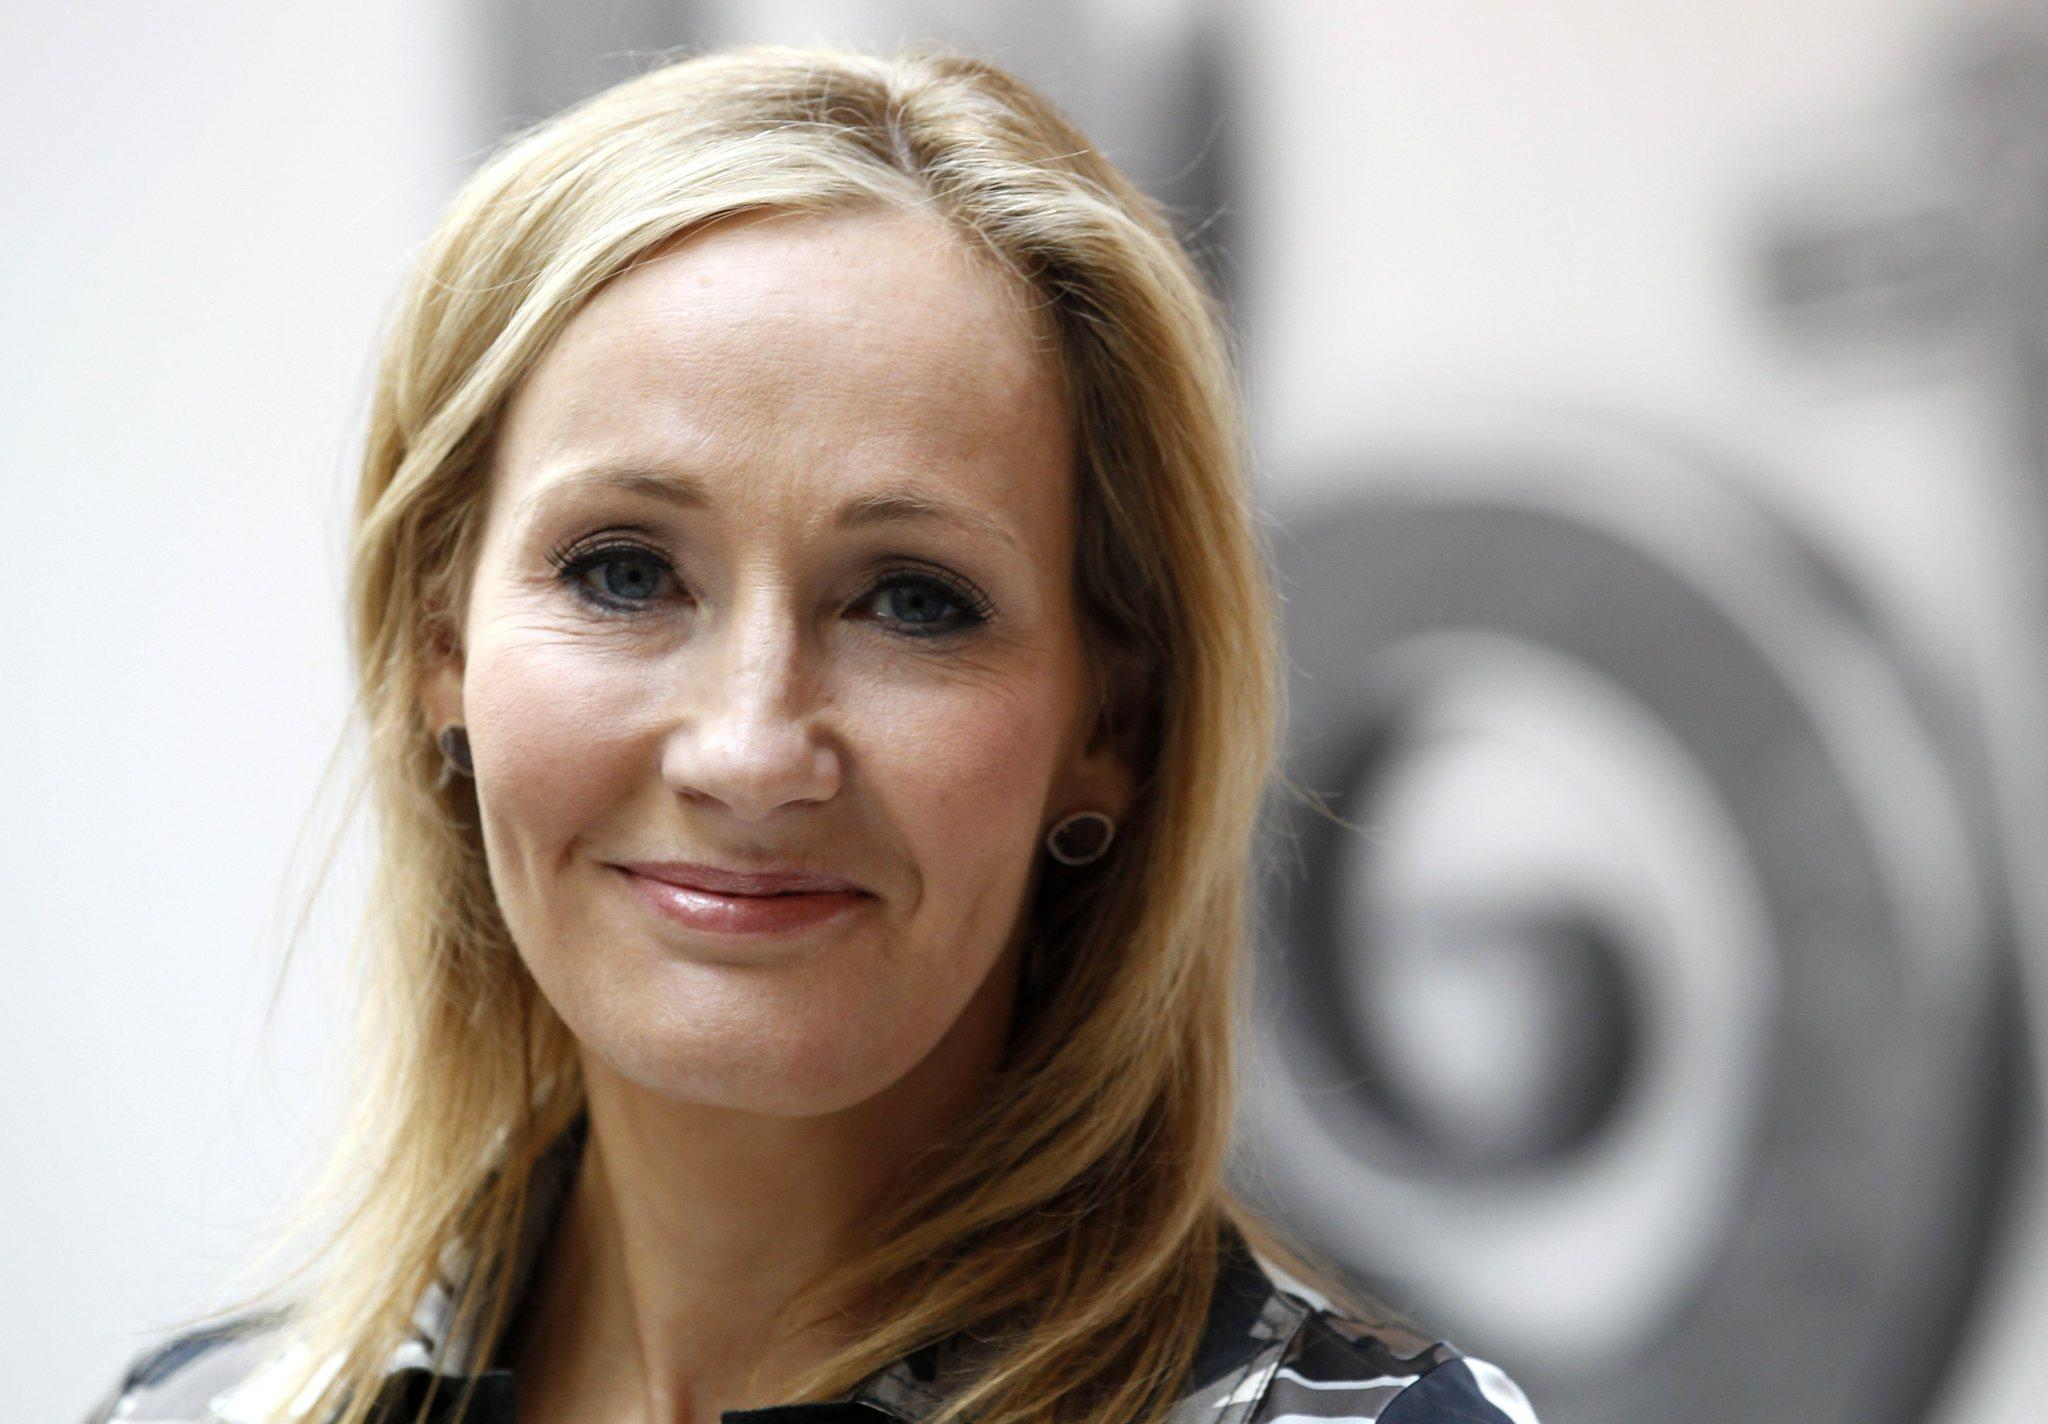 JK Rowling, author of the Harry Potter series of books, said she believed Scotland was better off staying in the United Kingdom.